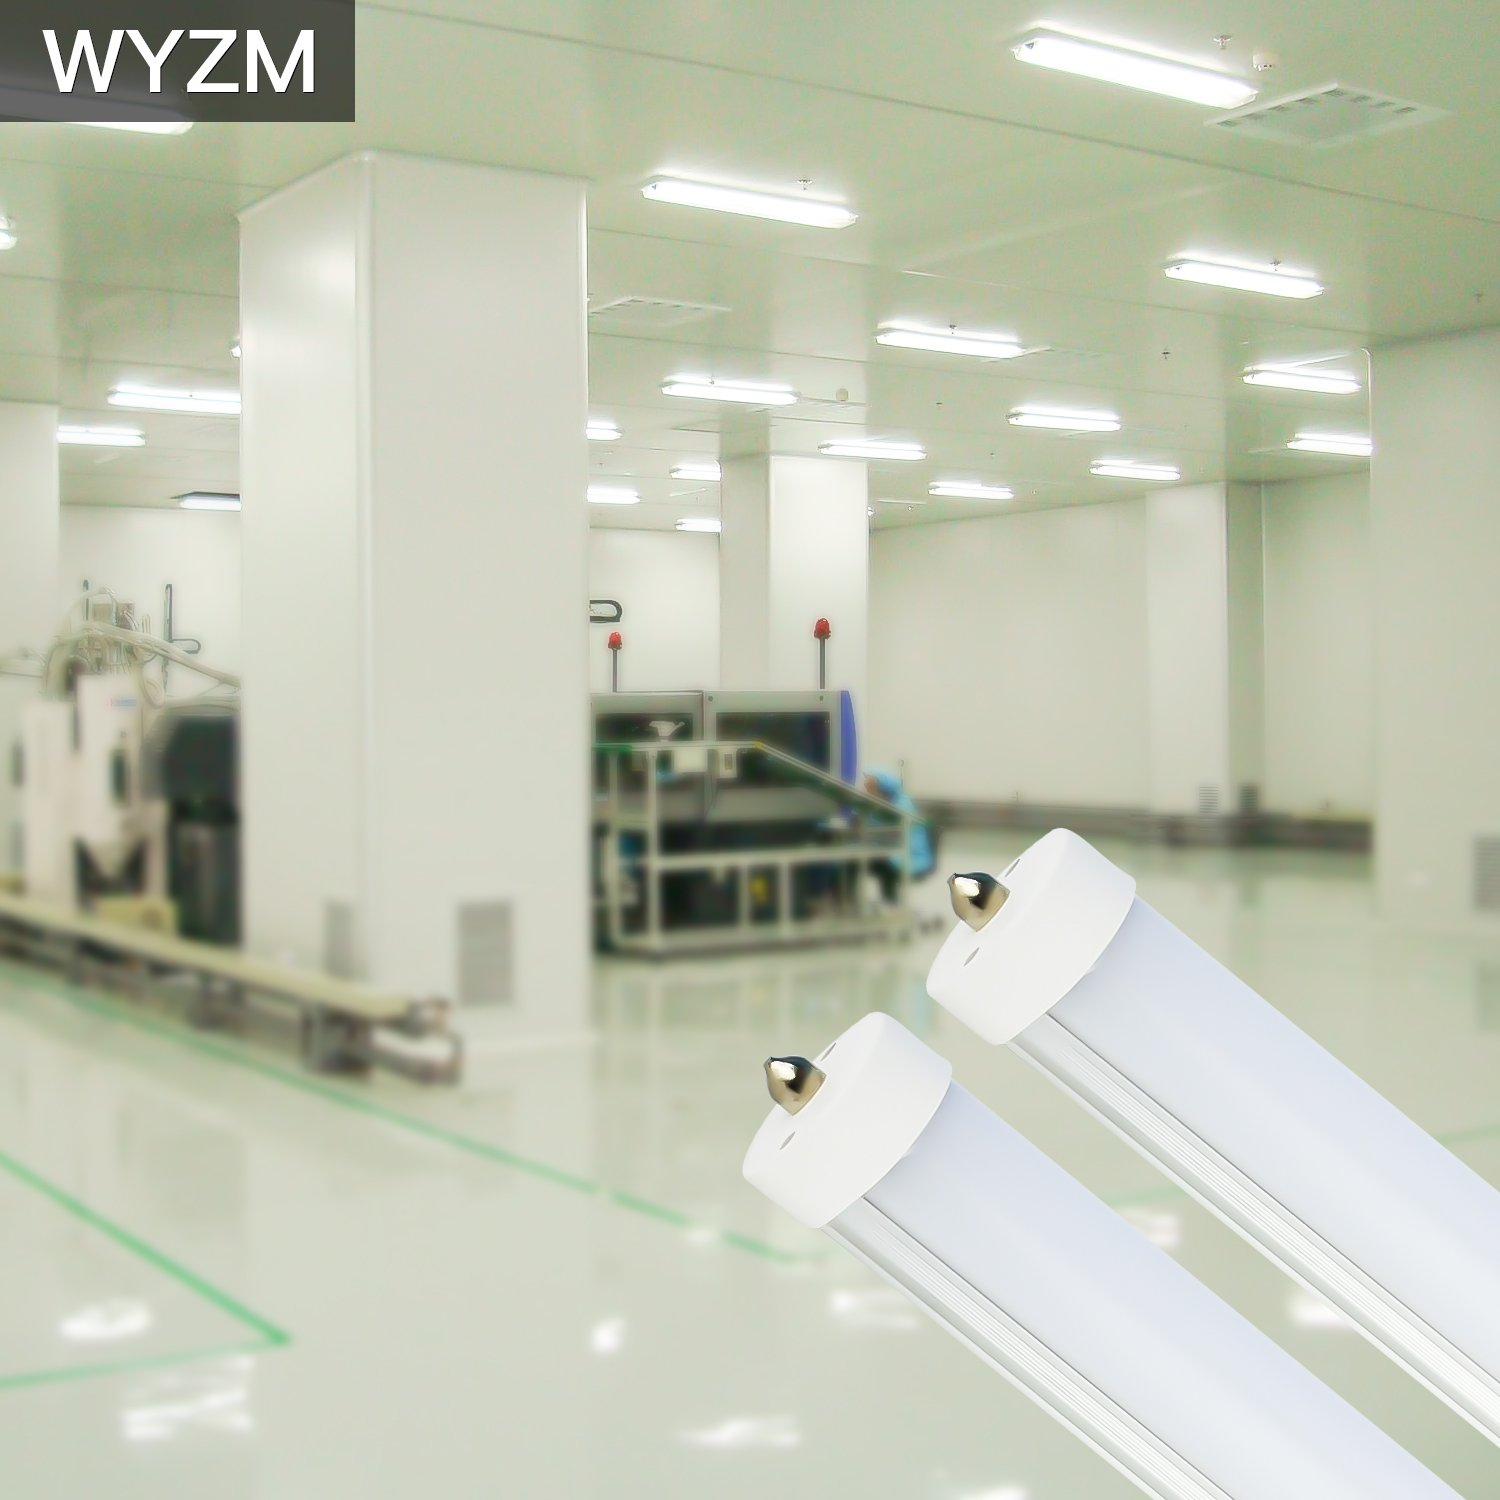 8ft LED Light Tubes for Fluorescent Fixtures,96'' F96T12 LED Tube,Replacement,120V and 277V Input, 5500K Daylight White,40Watt 4000LM Super Bright (4PCS 5500K Daylight White) by WYZM (Image #8)